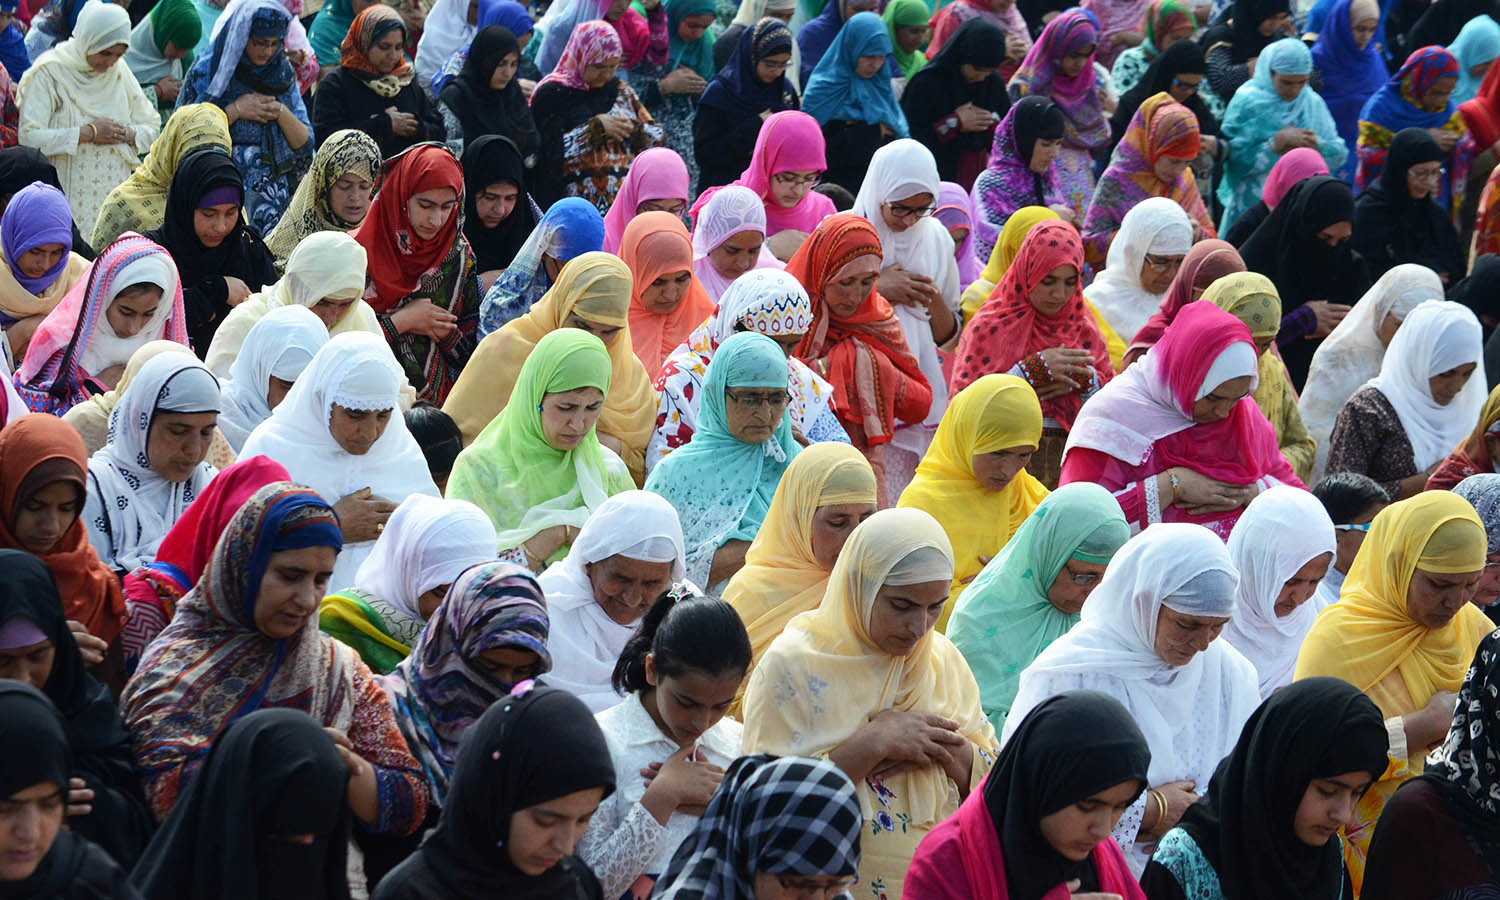 Kashmiri women offer Eidul Fitr prayers in Srinagar, India-held Kashmir. — Faisal Khan